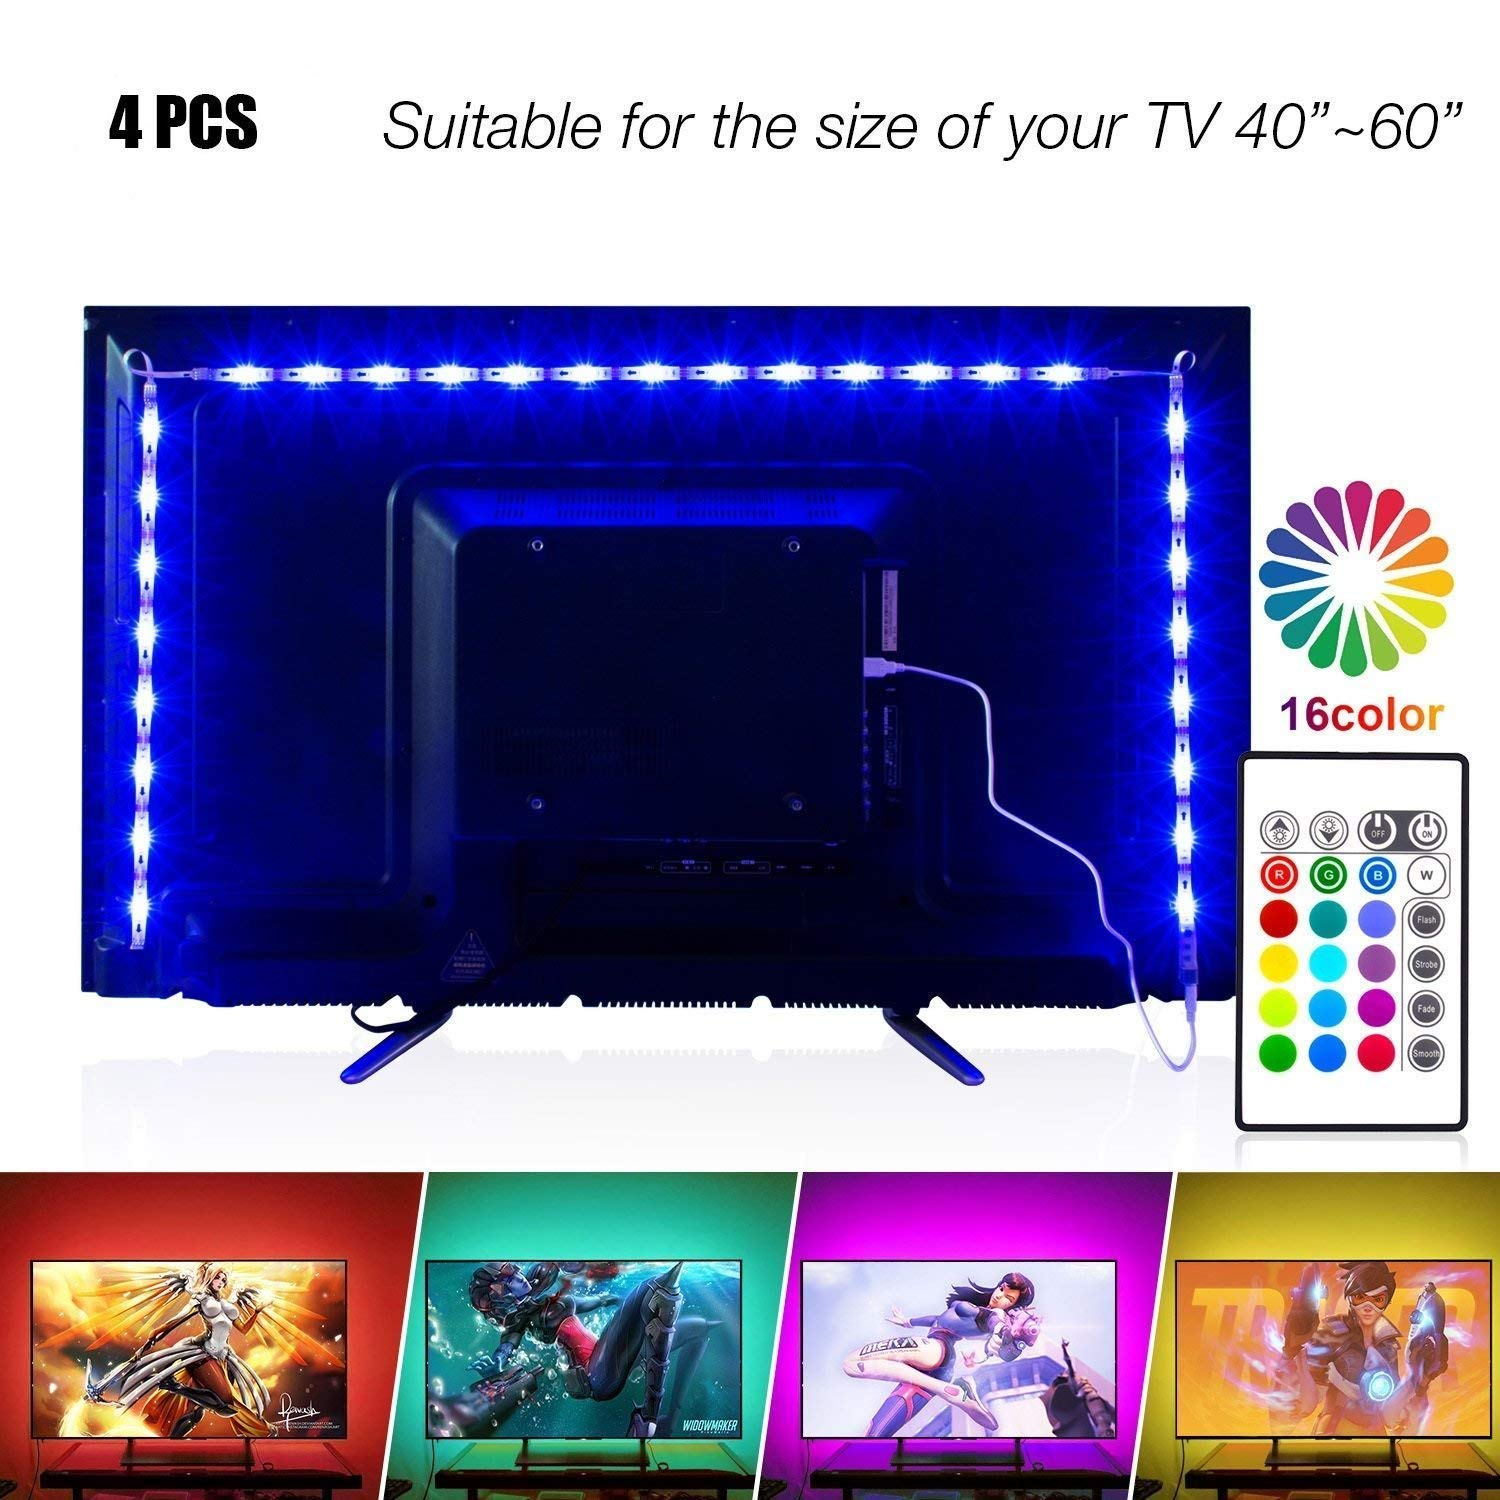 Led Strip Lights 6.56ft for 40-60in TV, PANGTON VILLA USB LED TV Backlight Kit with Remote - 16 Color Changing 5050 LEDs Bias Lighting for HDTV by PANGTON VILLA (Image #1)